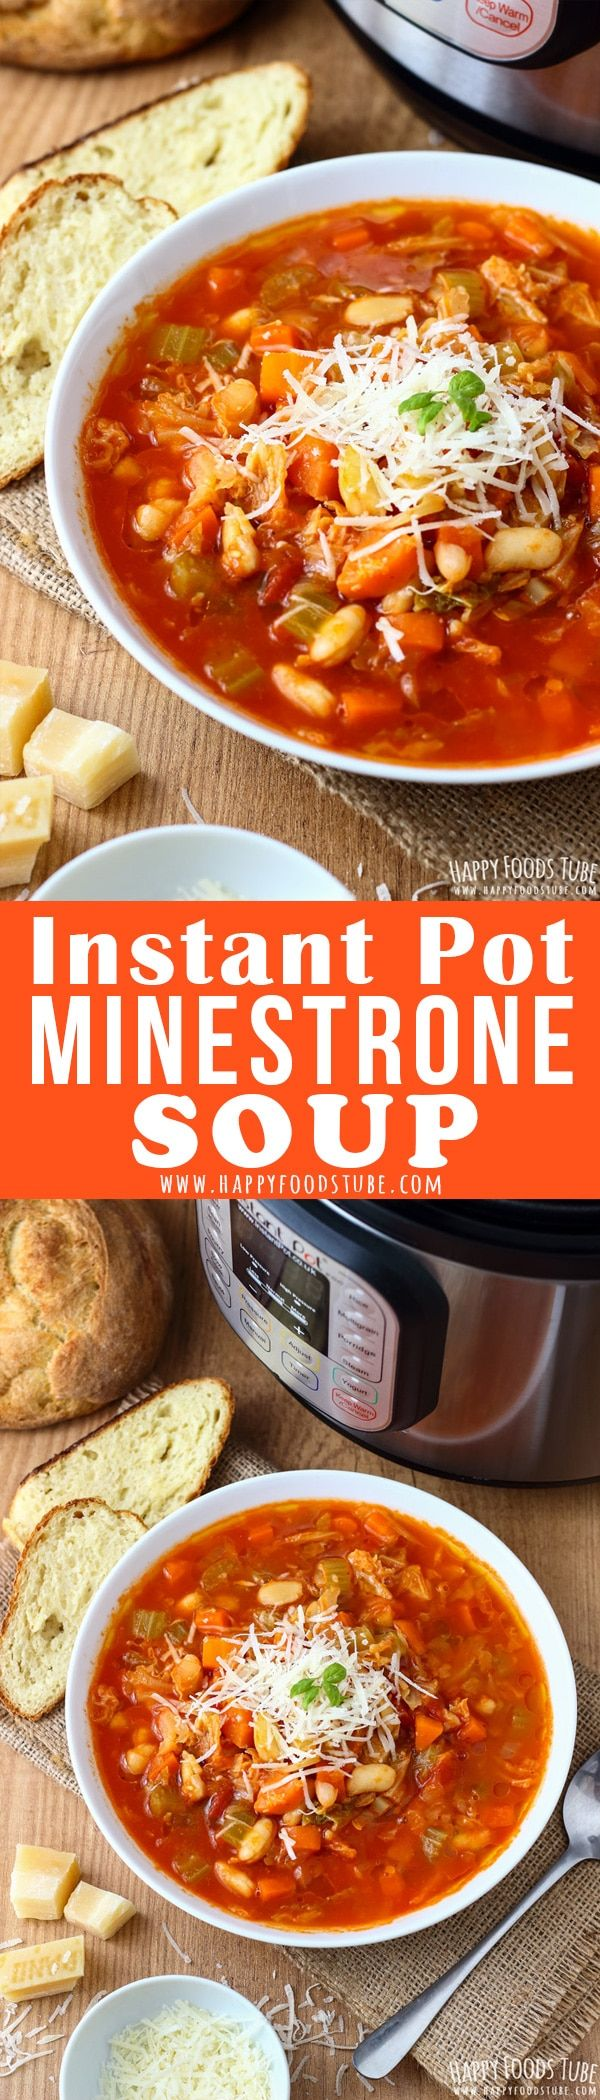 Instant Pot Minestrone soup is perfect for weeknight dinners. Hearty, comforting and served with a drizzle of olive oil, parmesan cheese and toast this Italian soup is definitely a Dinner Winner! #minestrone #soup #recipe #instantpot #pressurecooker #vegetarian #italian #food #authentic #homemade #traditional #minestronesoup